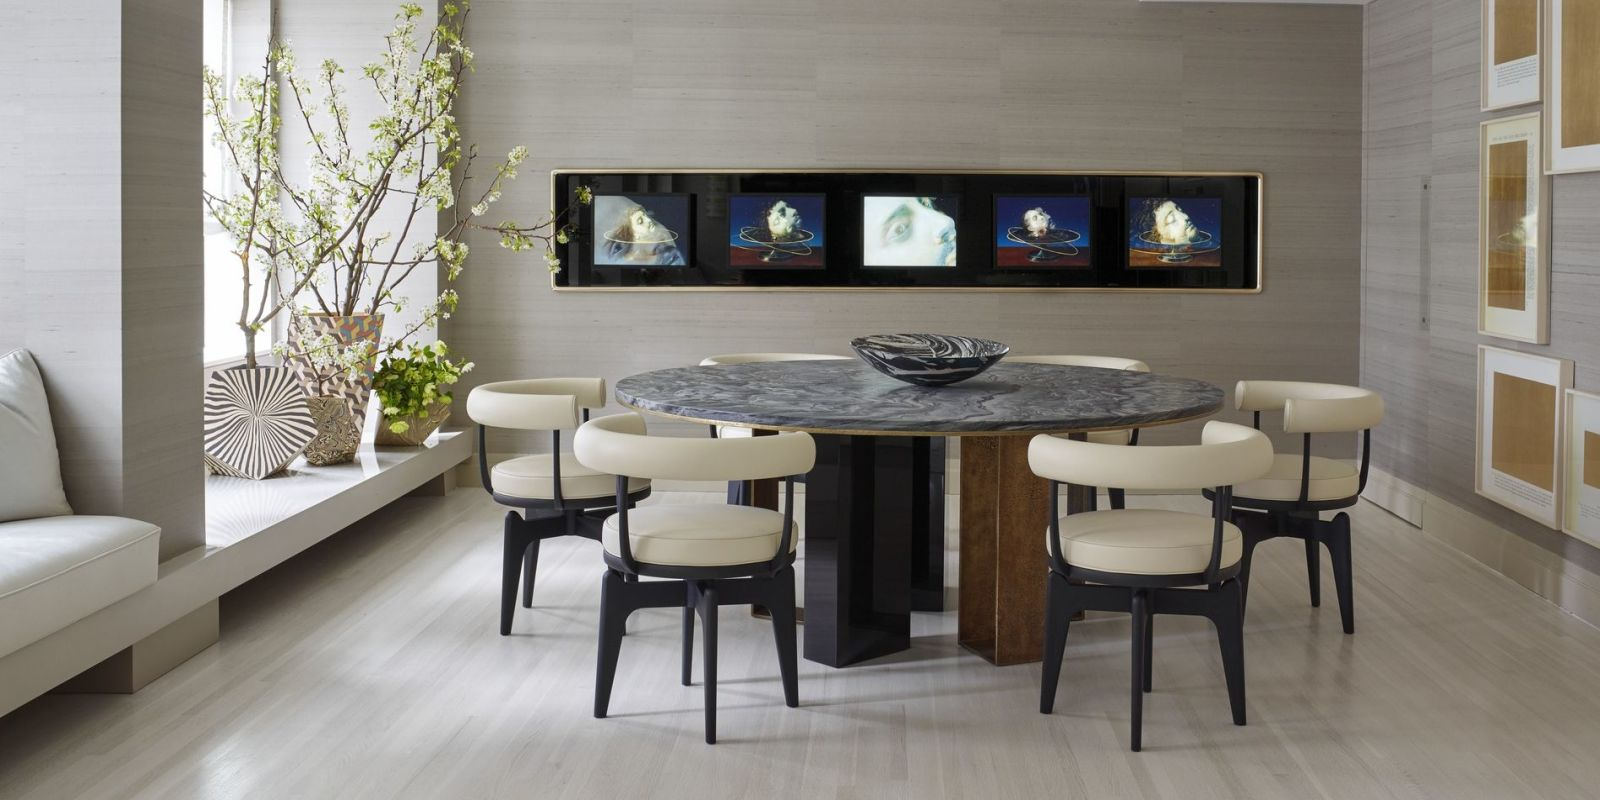 25 modern dining room decorating ideas contemporary for Dining room inspiration